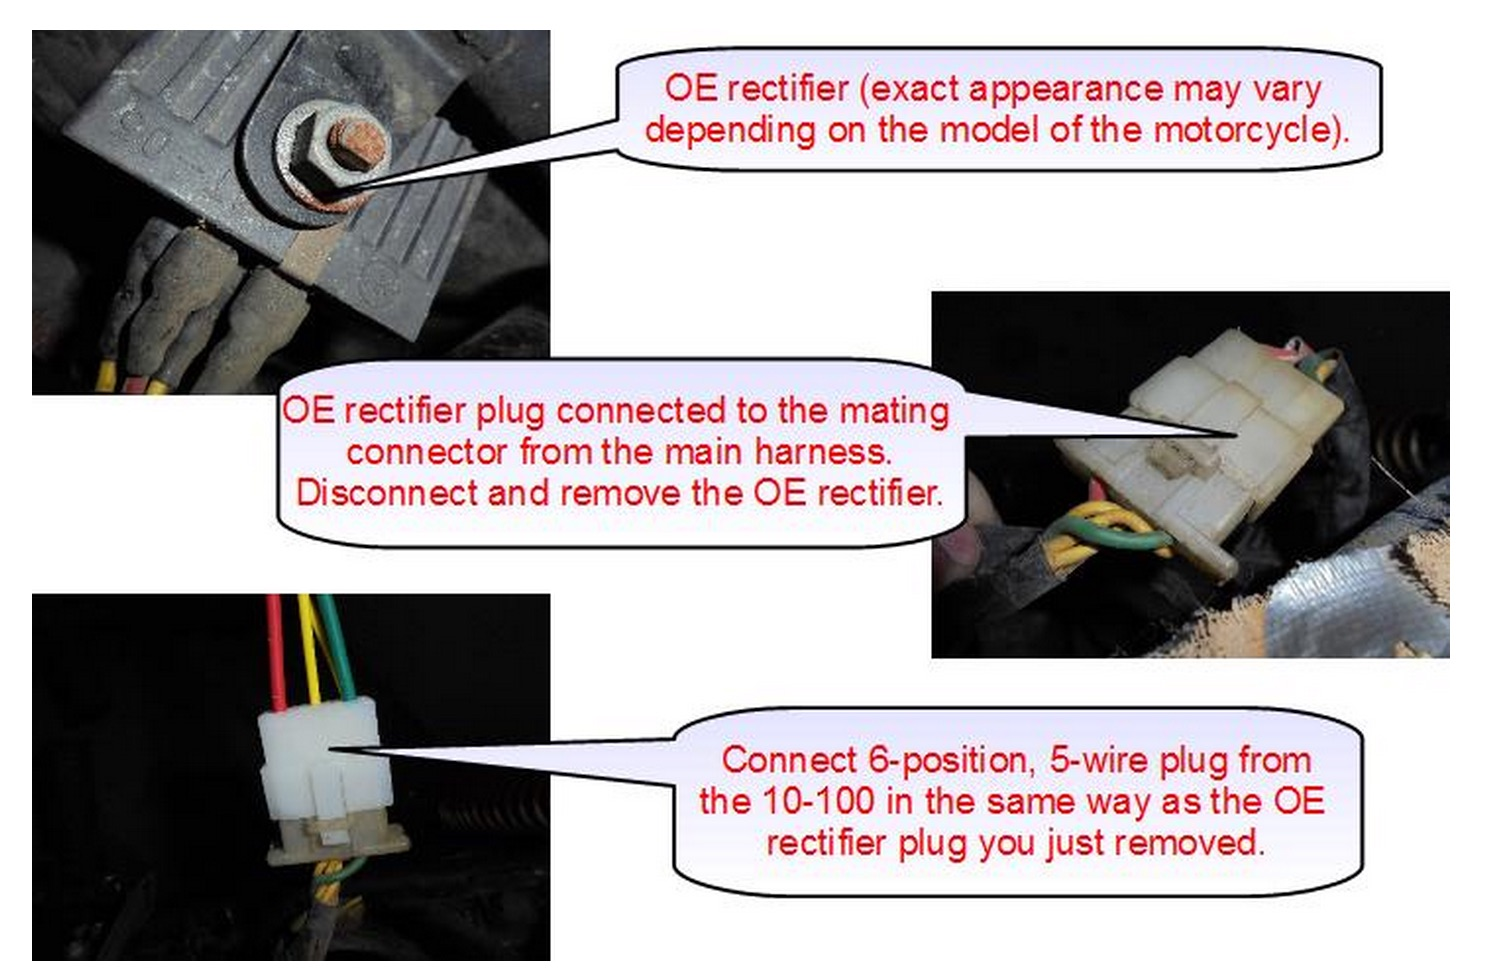 Connecting the rectifier - Disconnect the 6-position, 5 wire connector from  the OE rectifier & plug the identical connector on the 10-100 in its place.